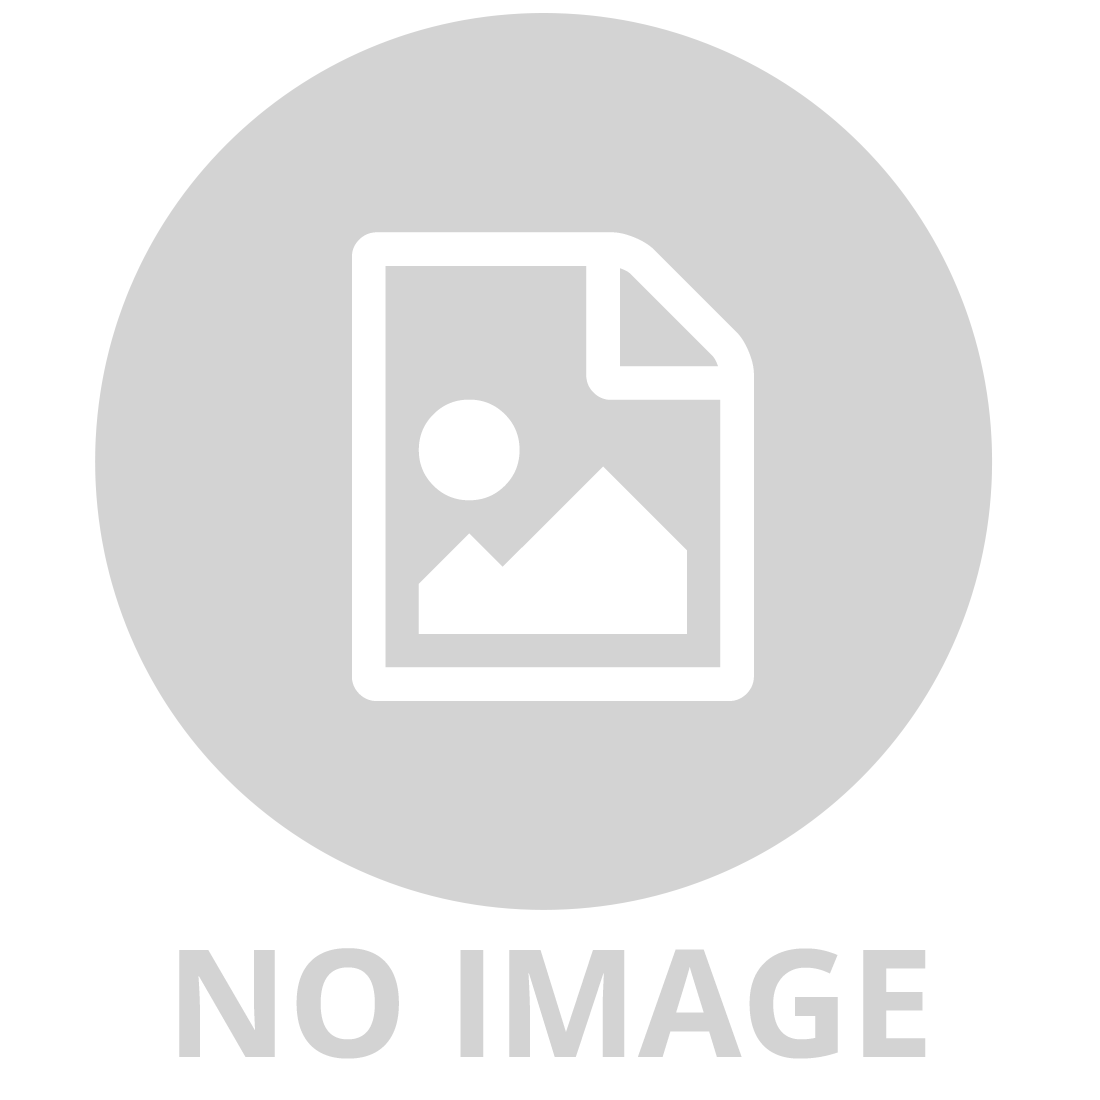 BRUDER 1:16 CONSTRUCTION TRUCK WITH ARTICULATED FRONT LOADER